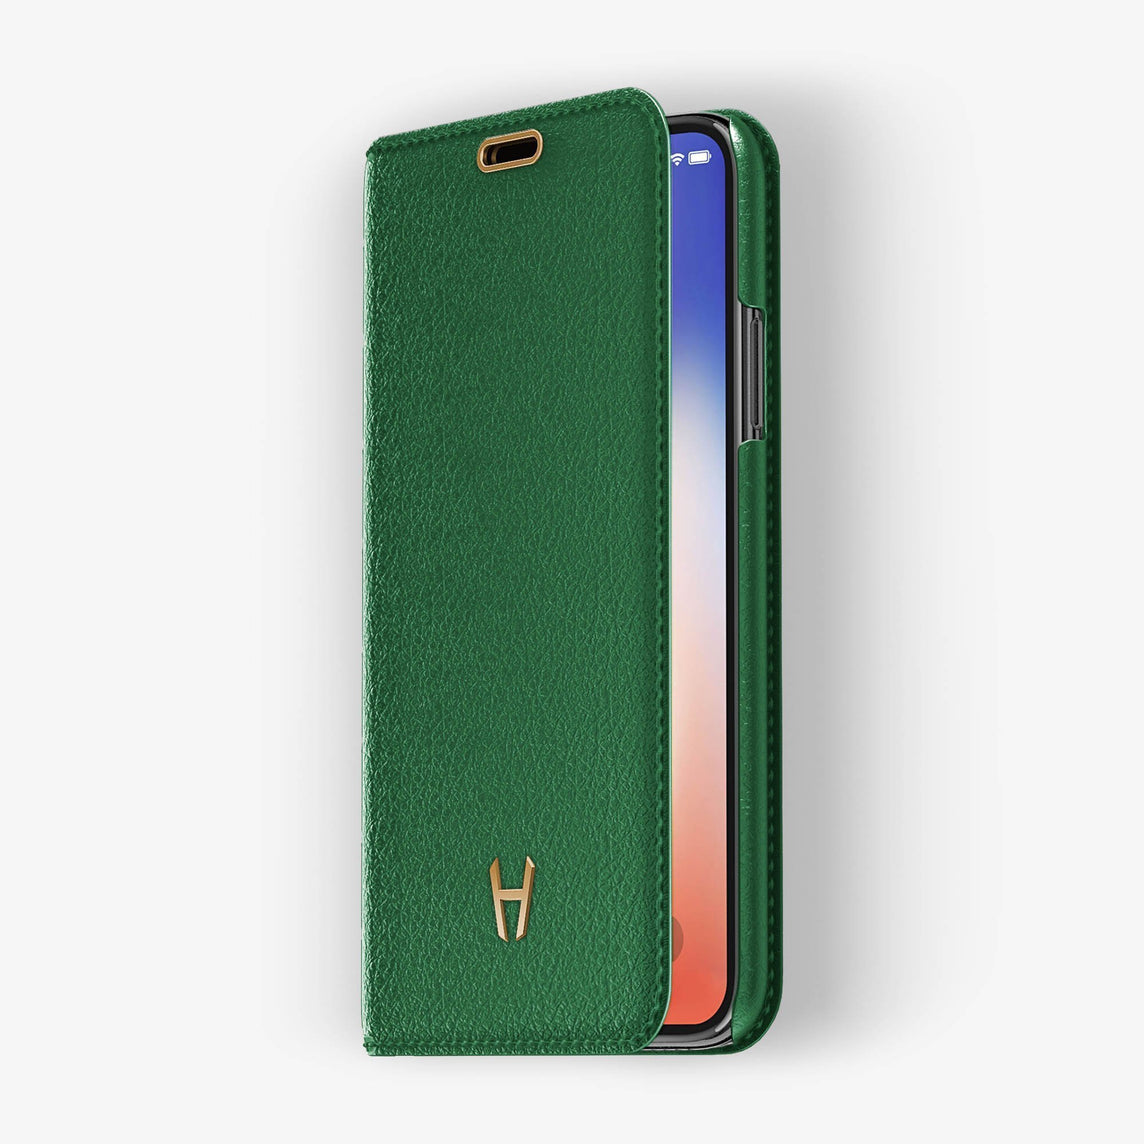 Green Calfskin iPhone Folio Case for iPhone XS Max finishing rose gold - Hadoro Luxury Cases - img2